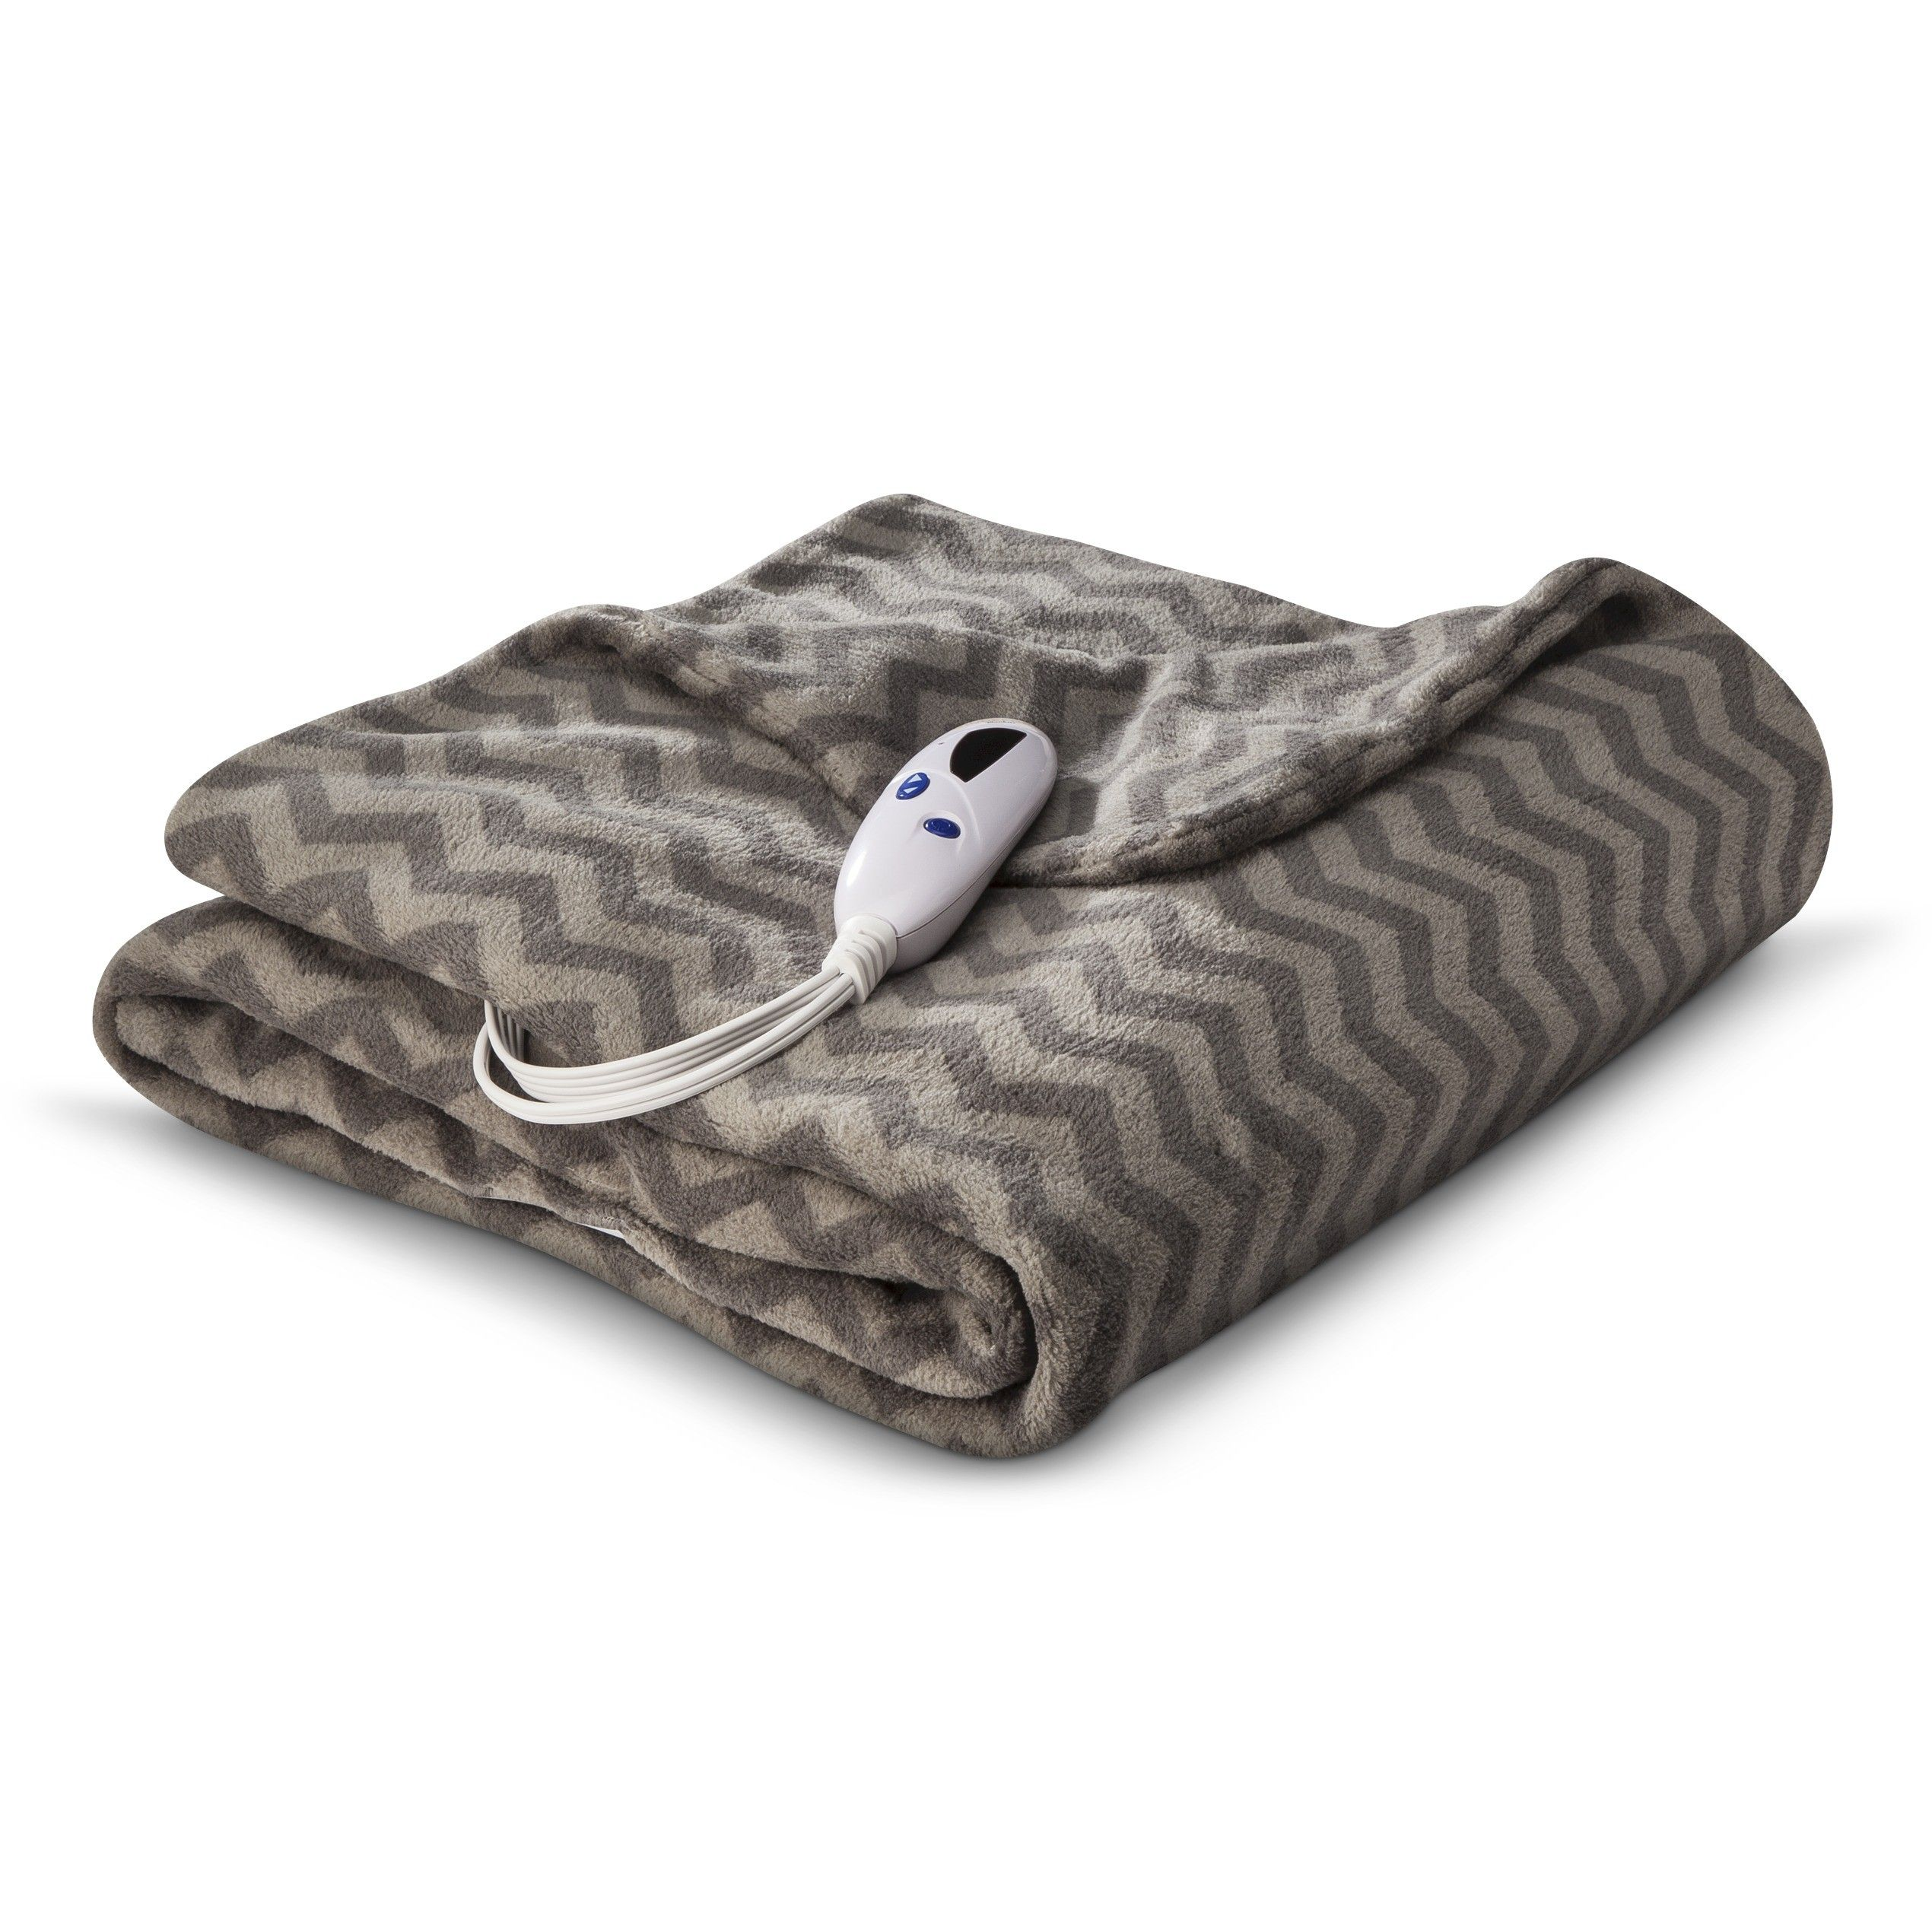 Electric Throw Blanket Walmart Custom A Heated Throw Blanket I Cannot Stress Enough How Badly I Need This